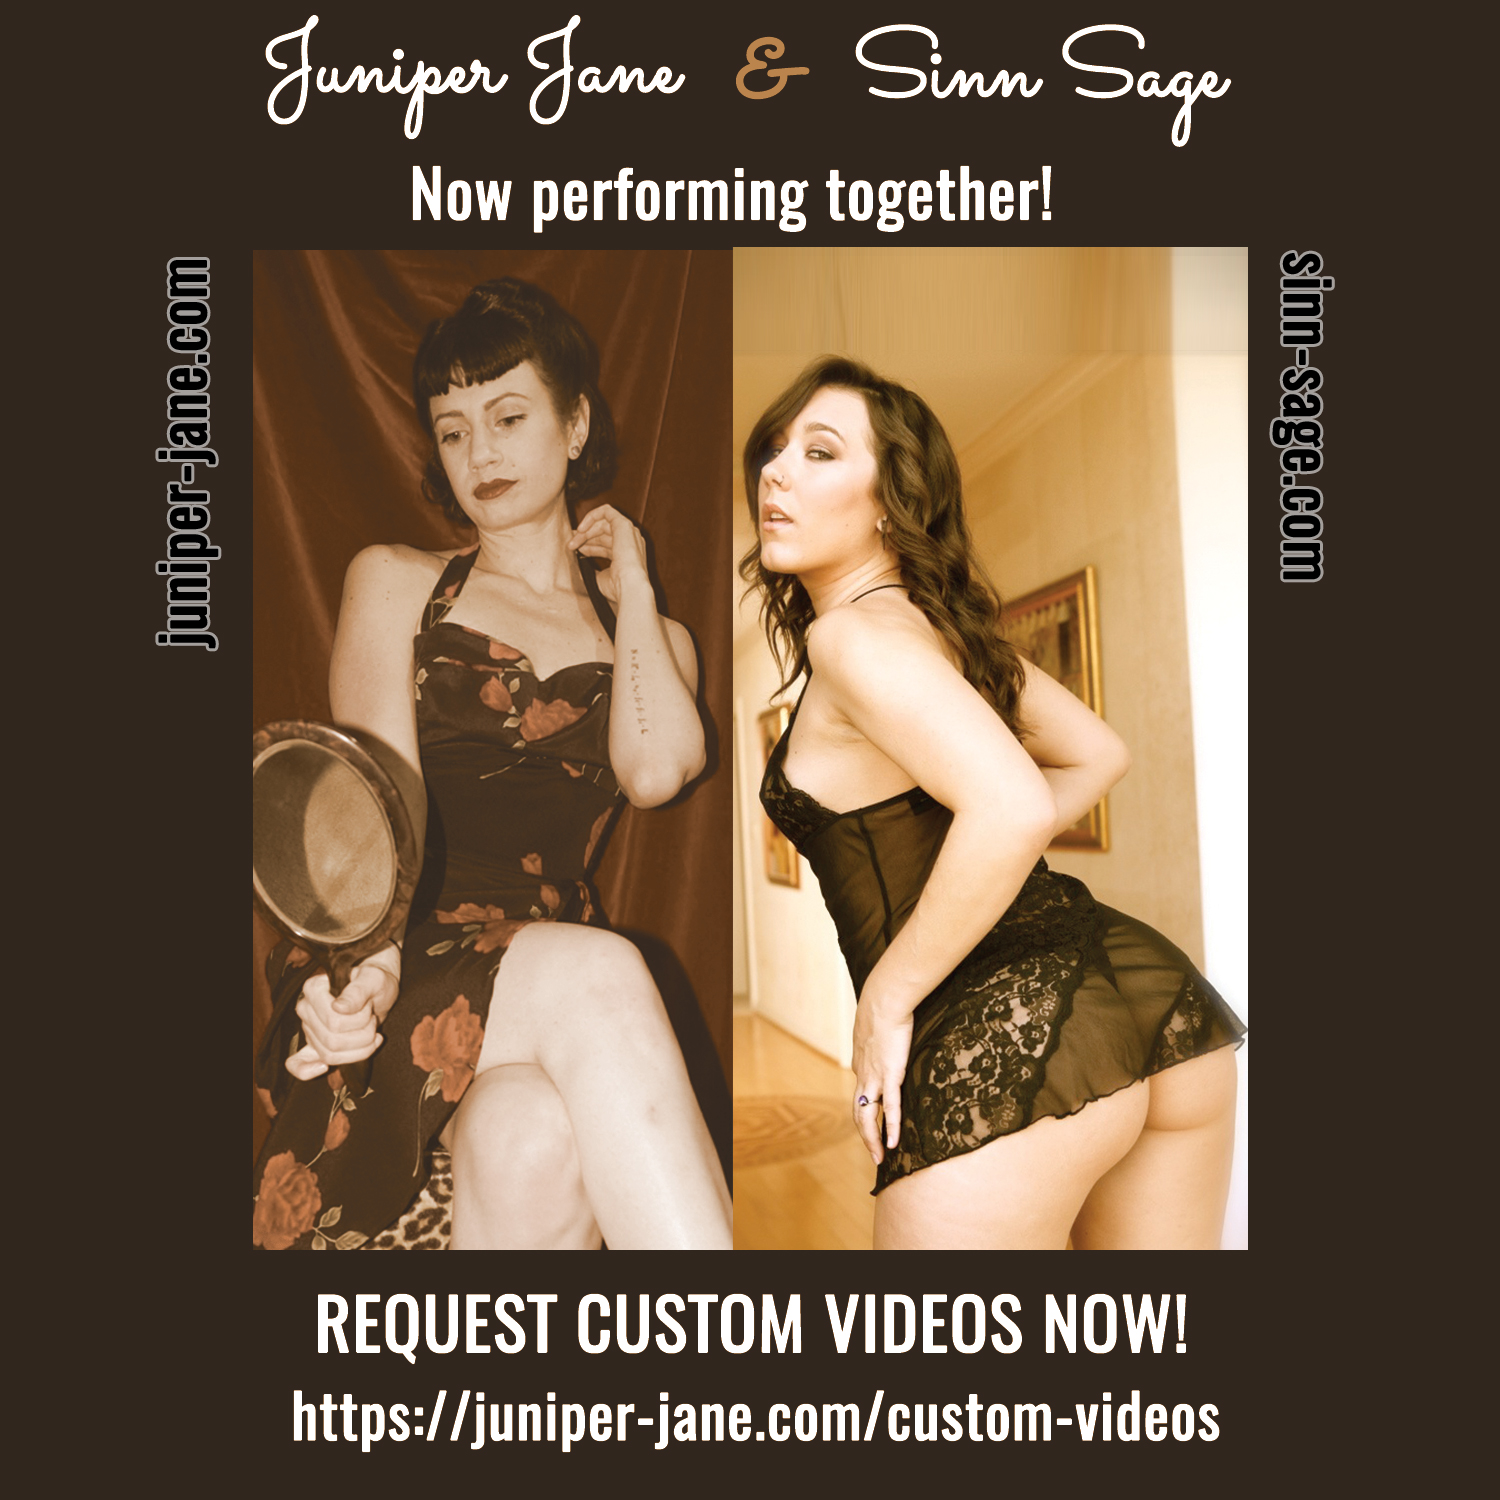 Juniper Jane now Performing Sinn Sage | Request Custom Videos Now